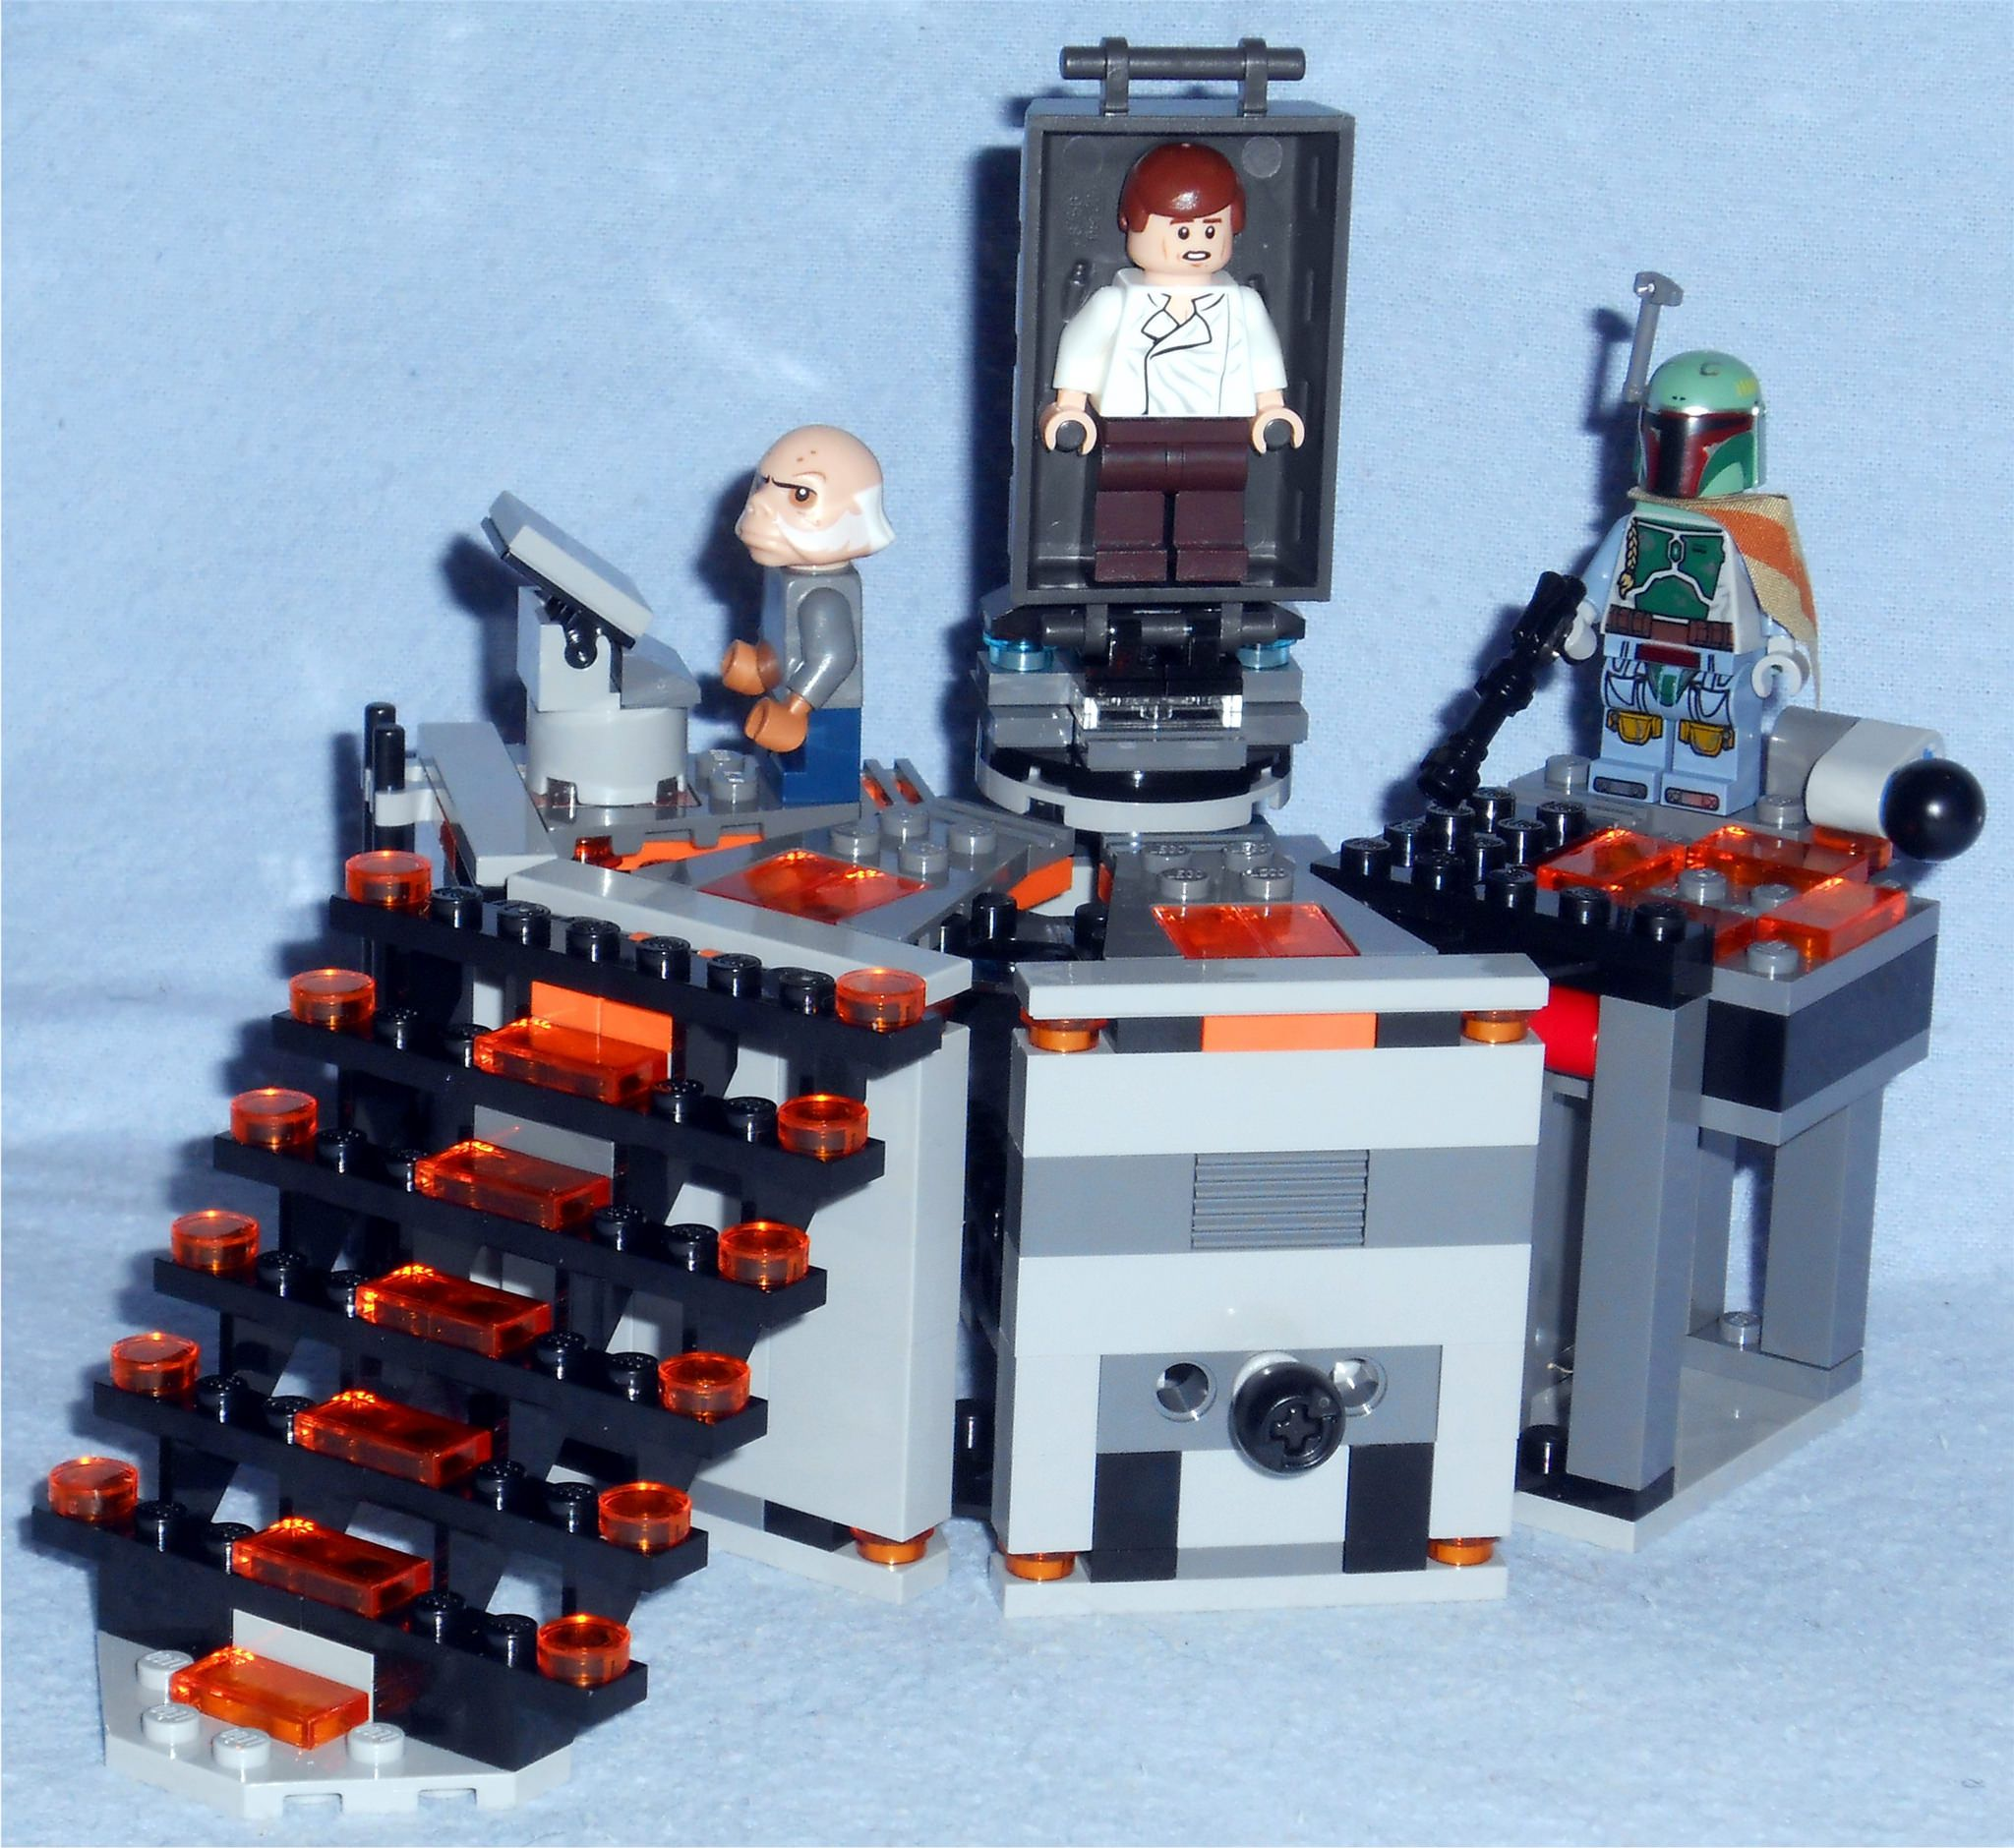 Lego CarbonFreezing Chamber Boba Fett Lego Star Wars - 25 2 lego star wars minifigures han solo han in carbonite blaster